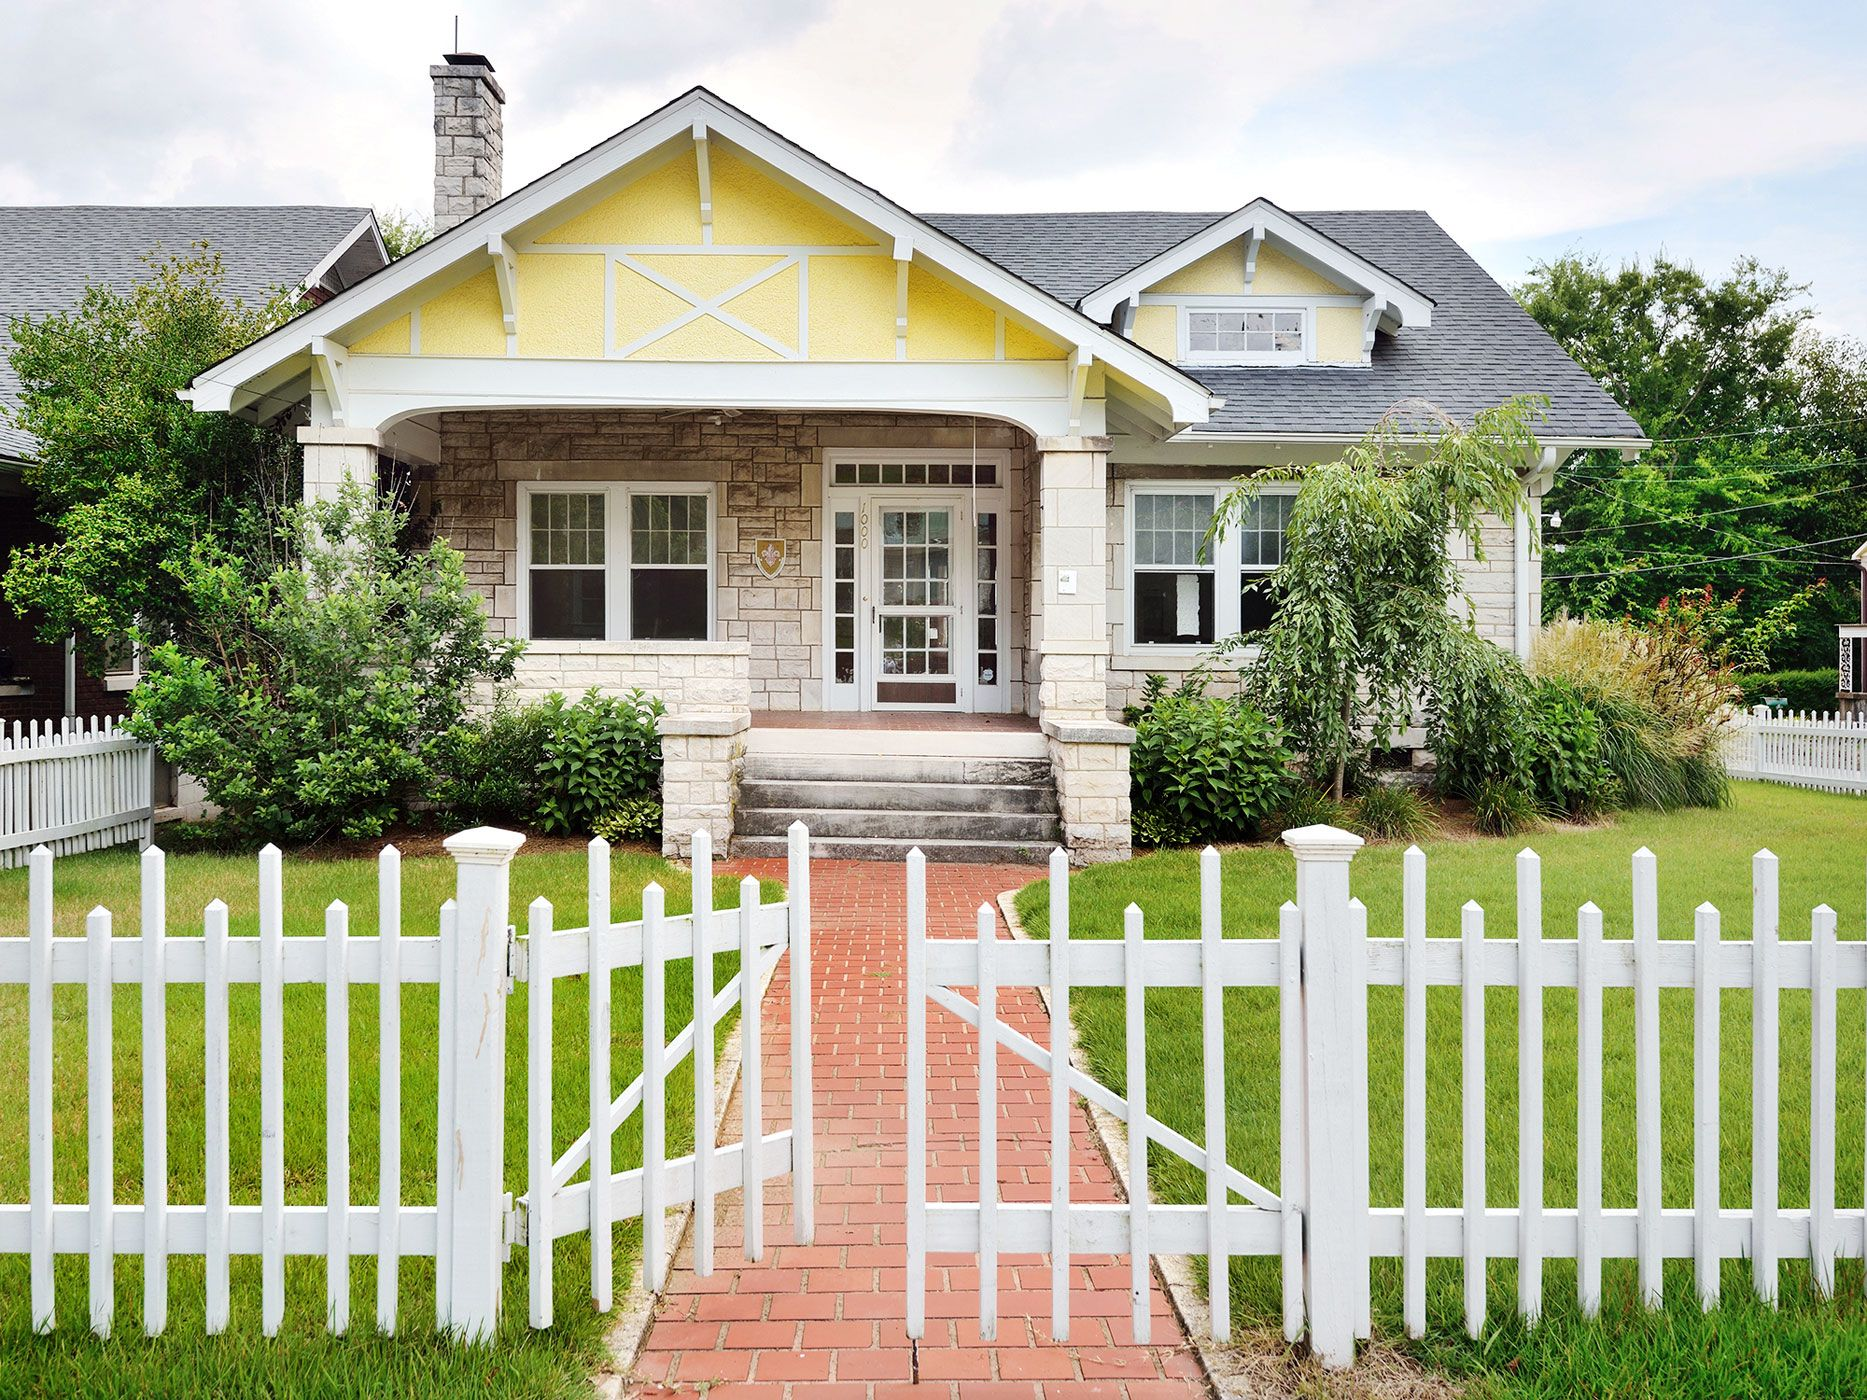 6 Quaint Houses For Sale With White Picket Fences Historic Homes